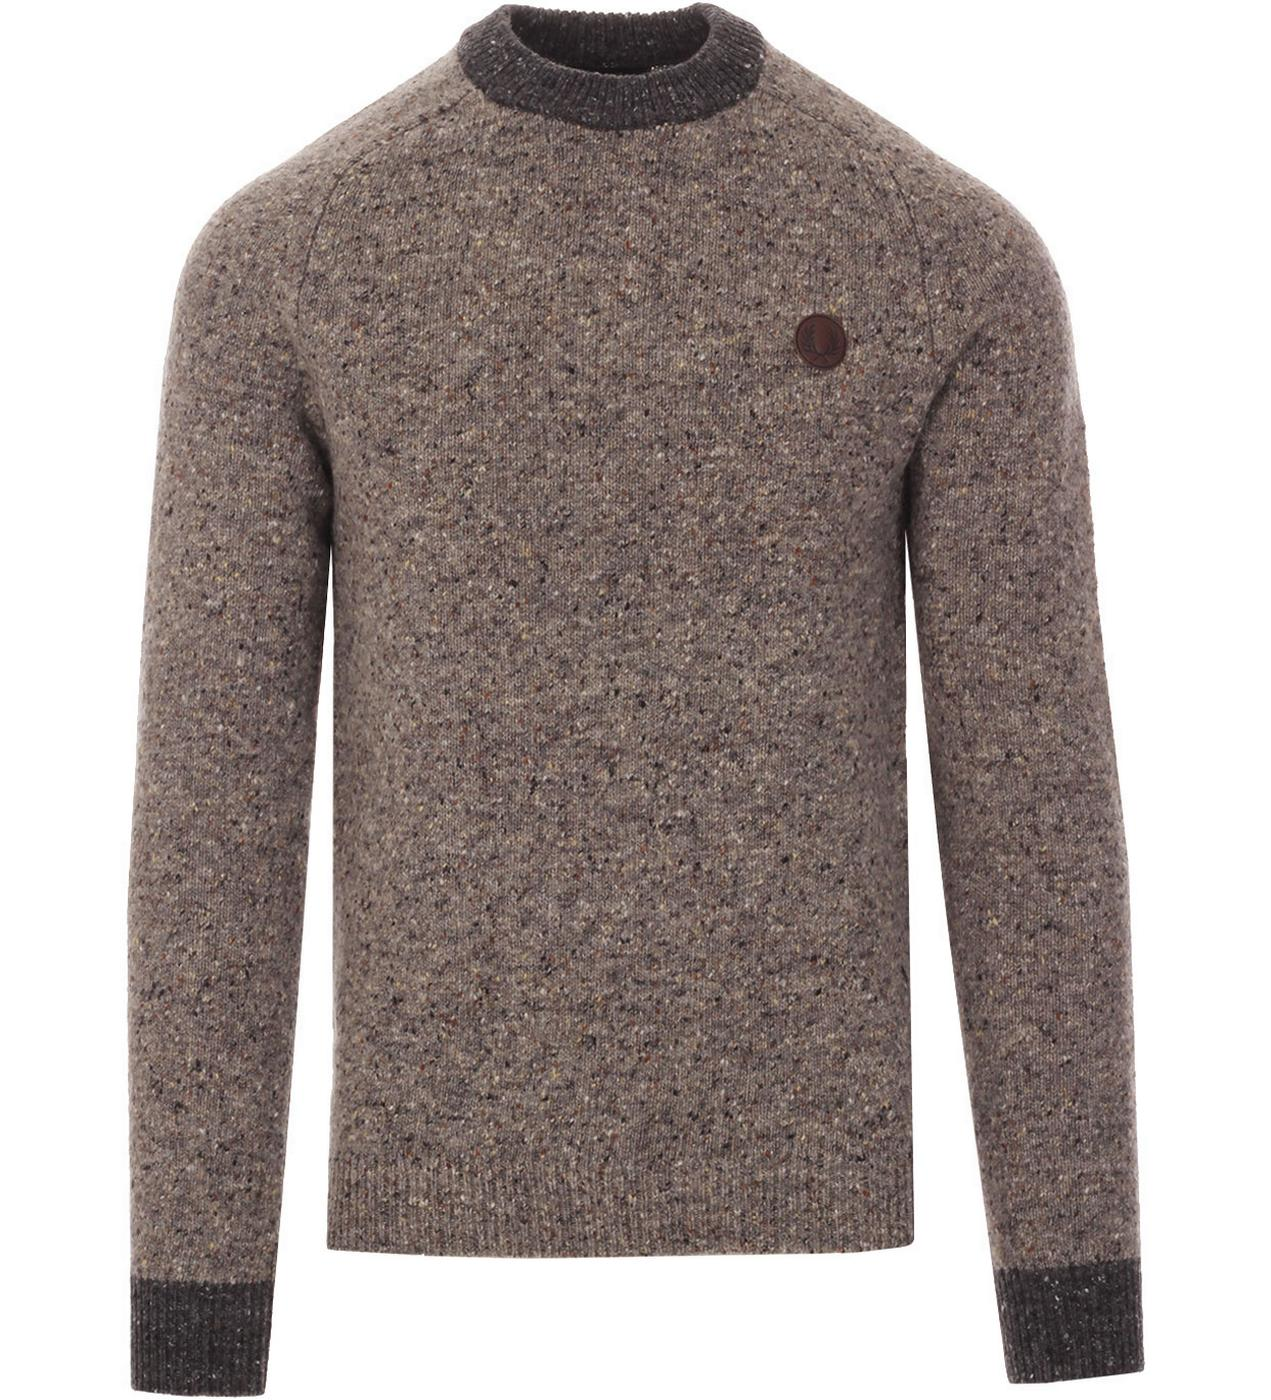 FRED PERRY Retro Irish Donegal Knitted Wool Jumper